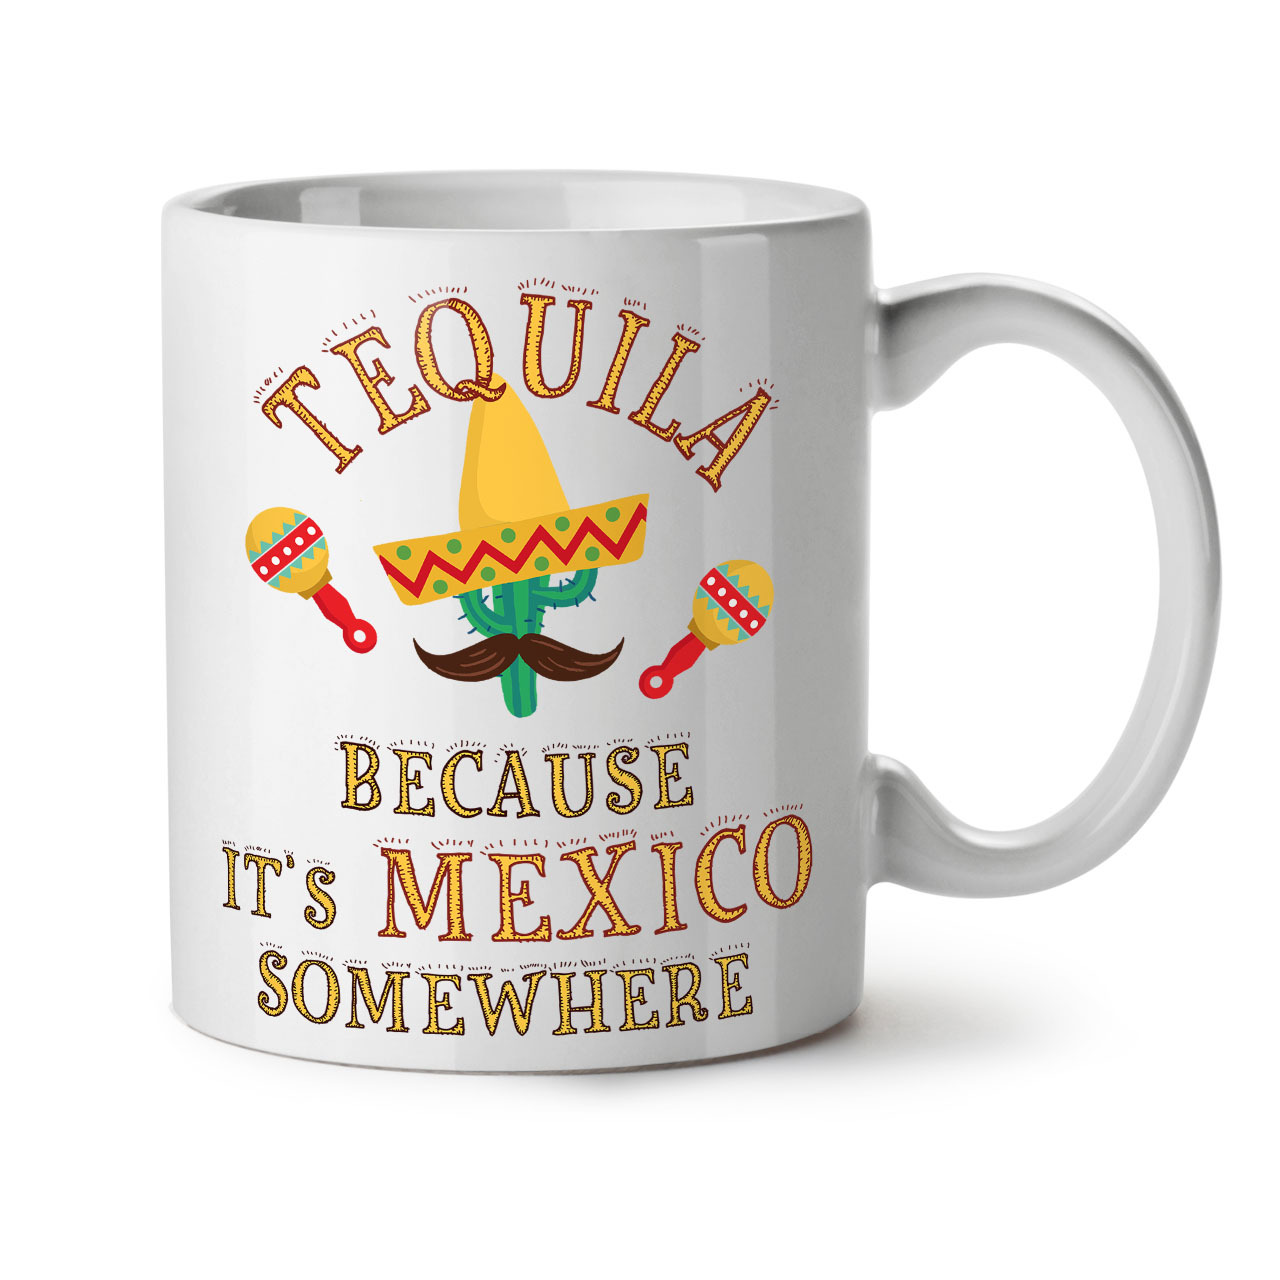 Primary image for Tequila Mexico Cactus NEW White Tea Coffee Mug 11 oz | Wellcoda